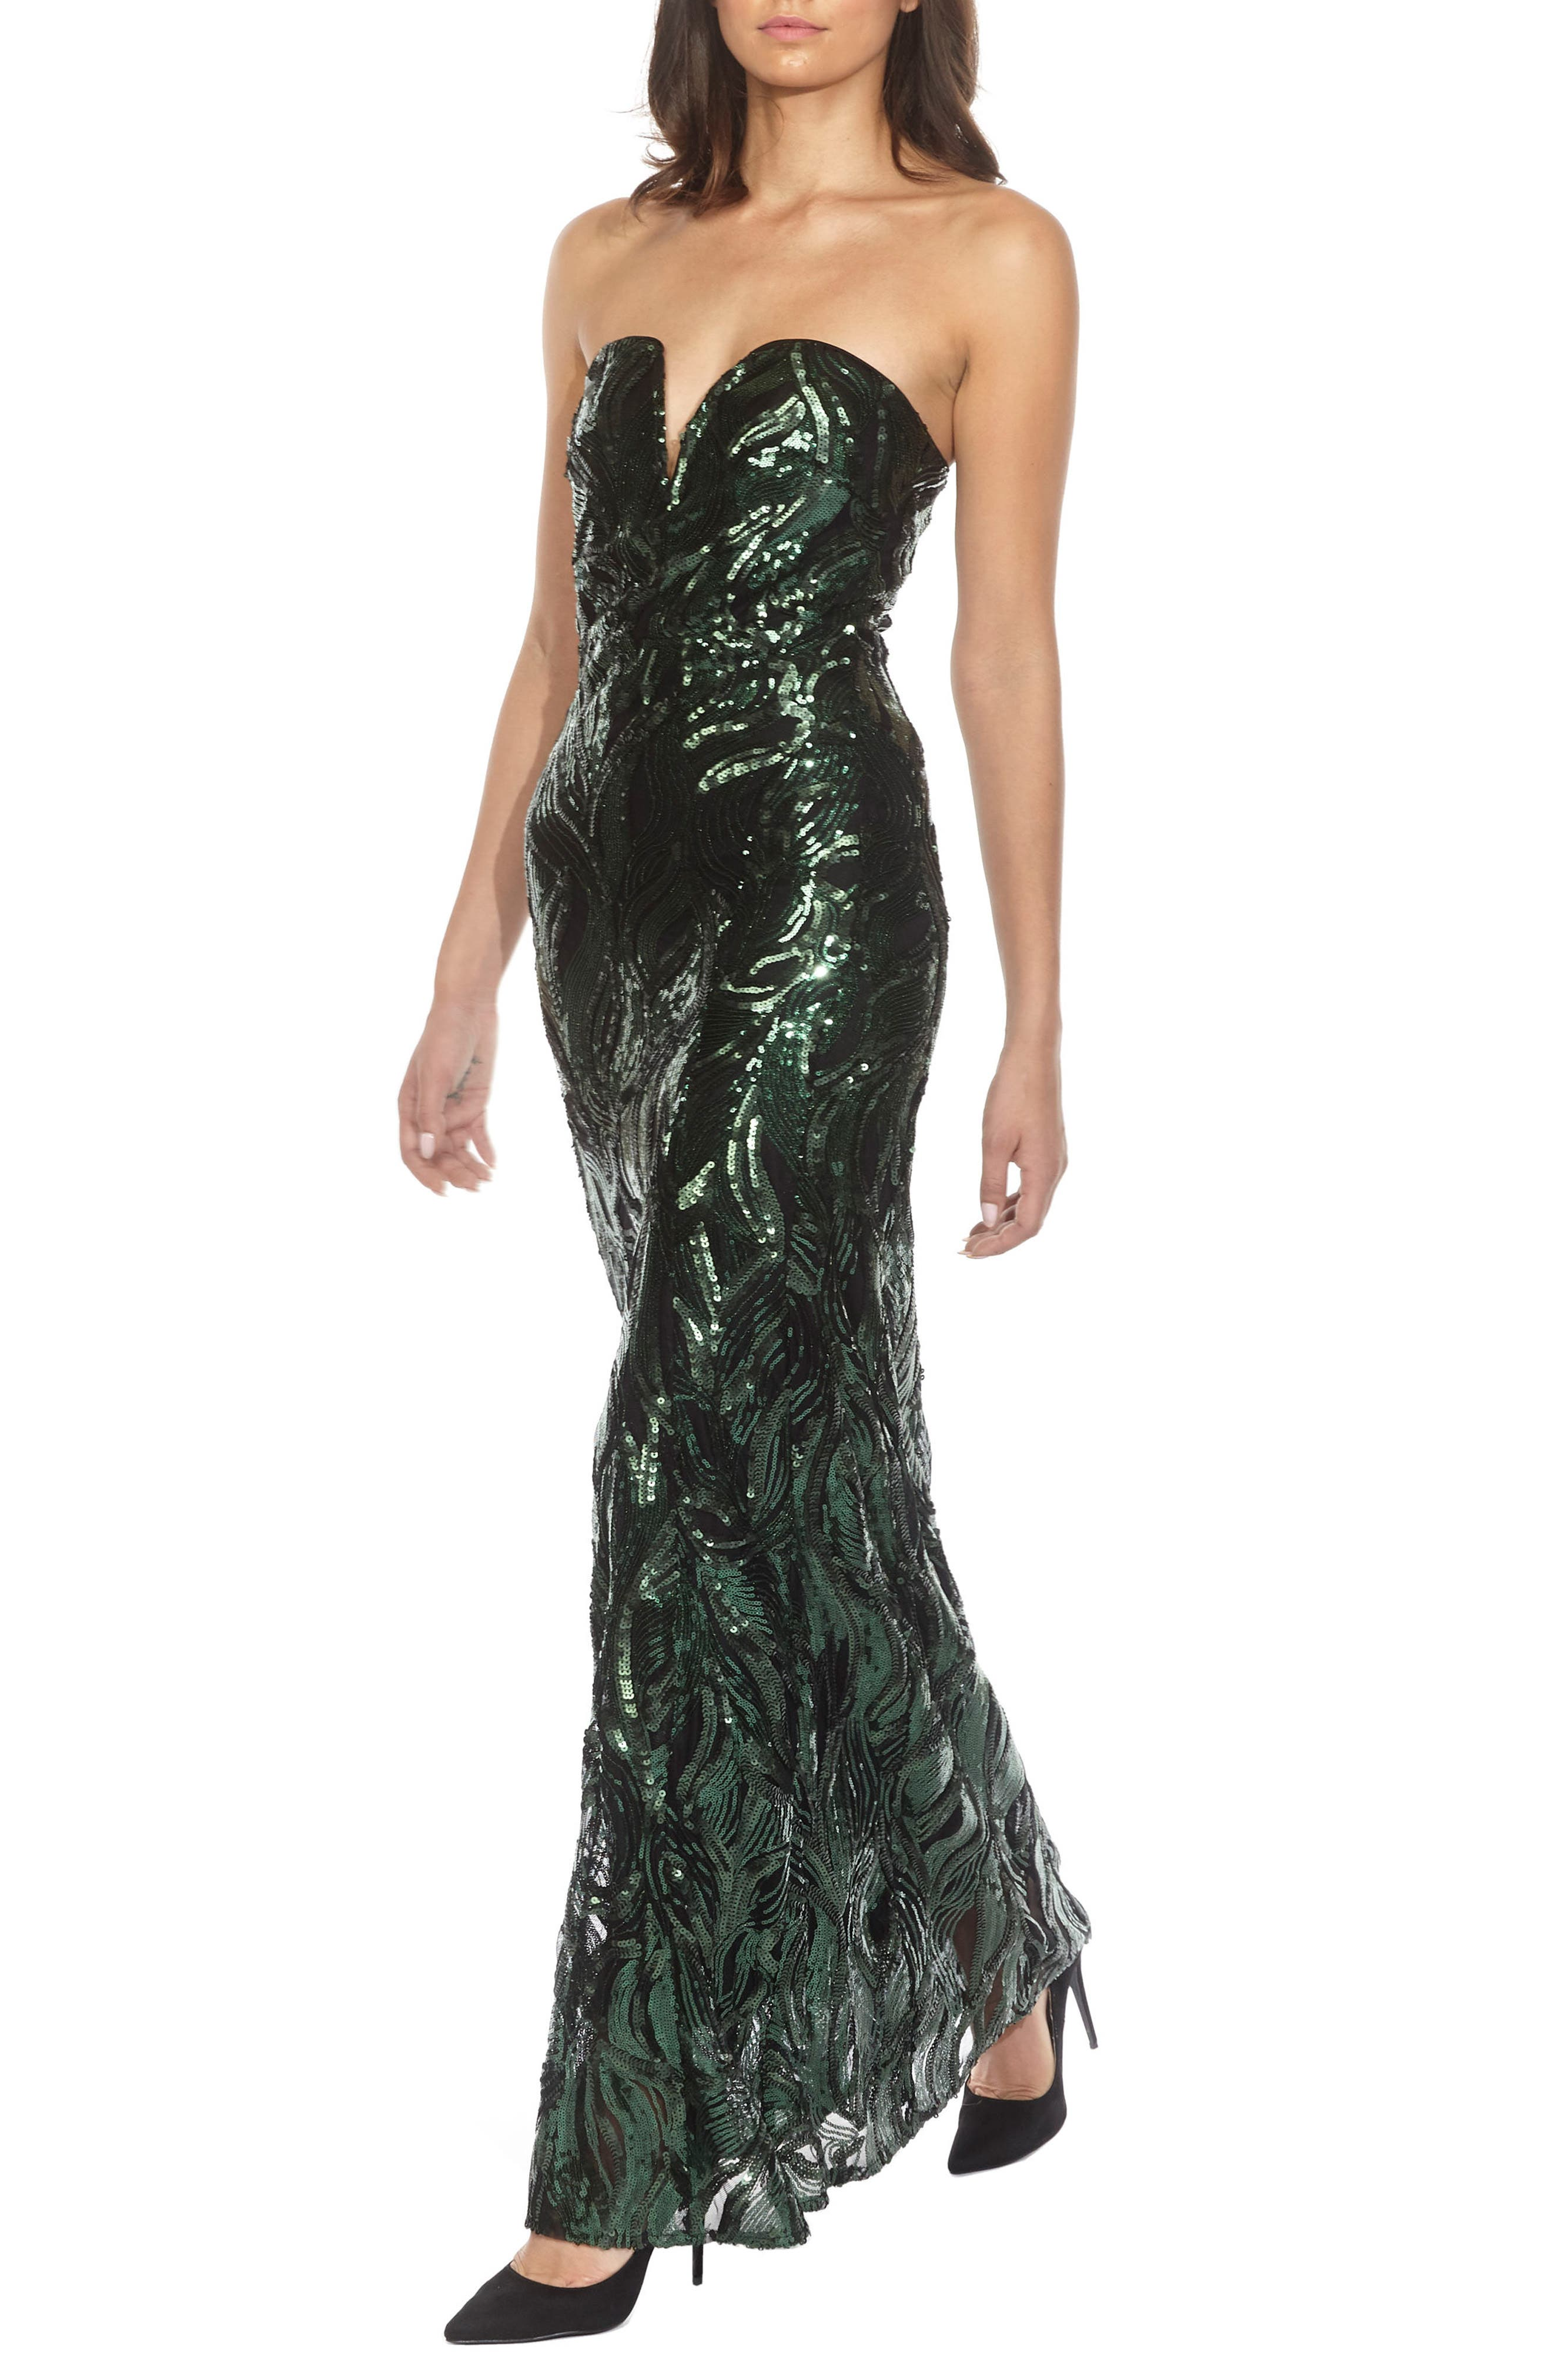 Gaynor Sequin Strapless Maxi Dress,                             Alternate thumbnail 3, color,                             Green